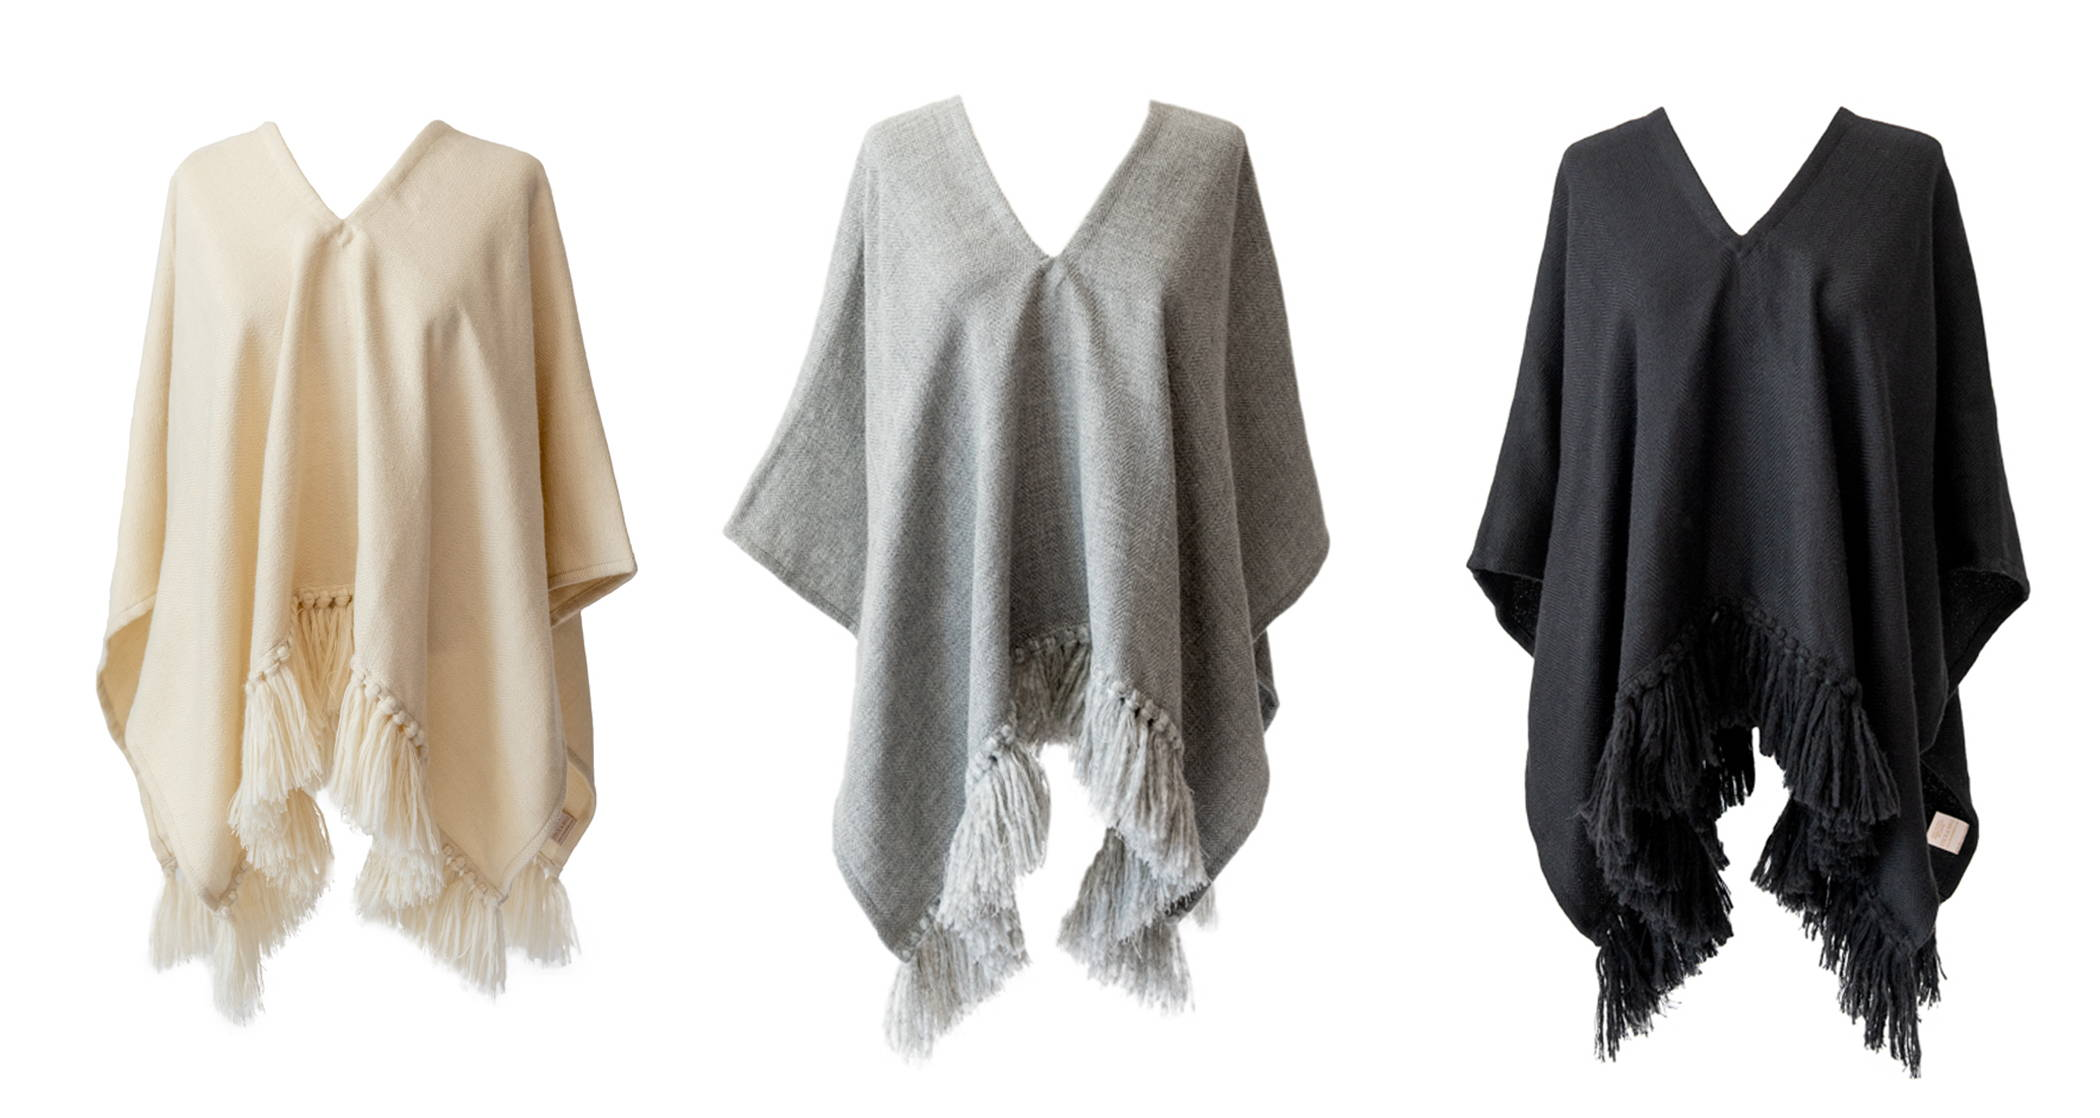 Display of herringbone handwoven Cropped Fringe Alpaca ponchos in cream, light grey & black